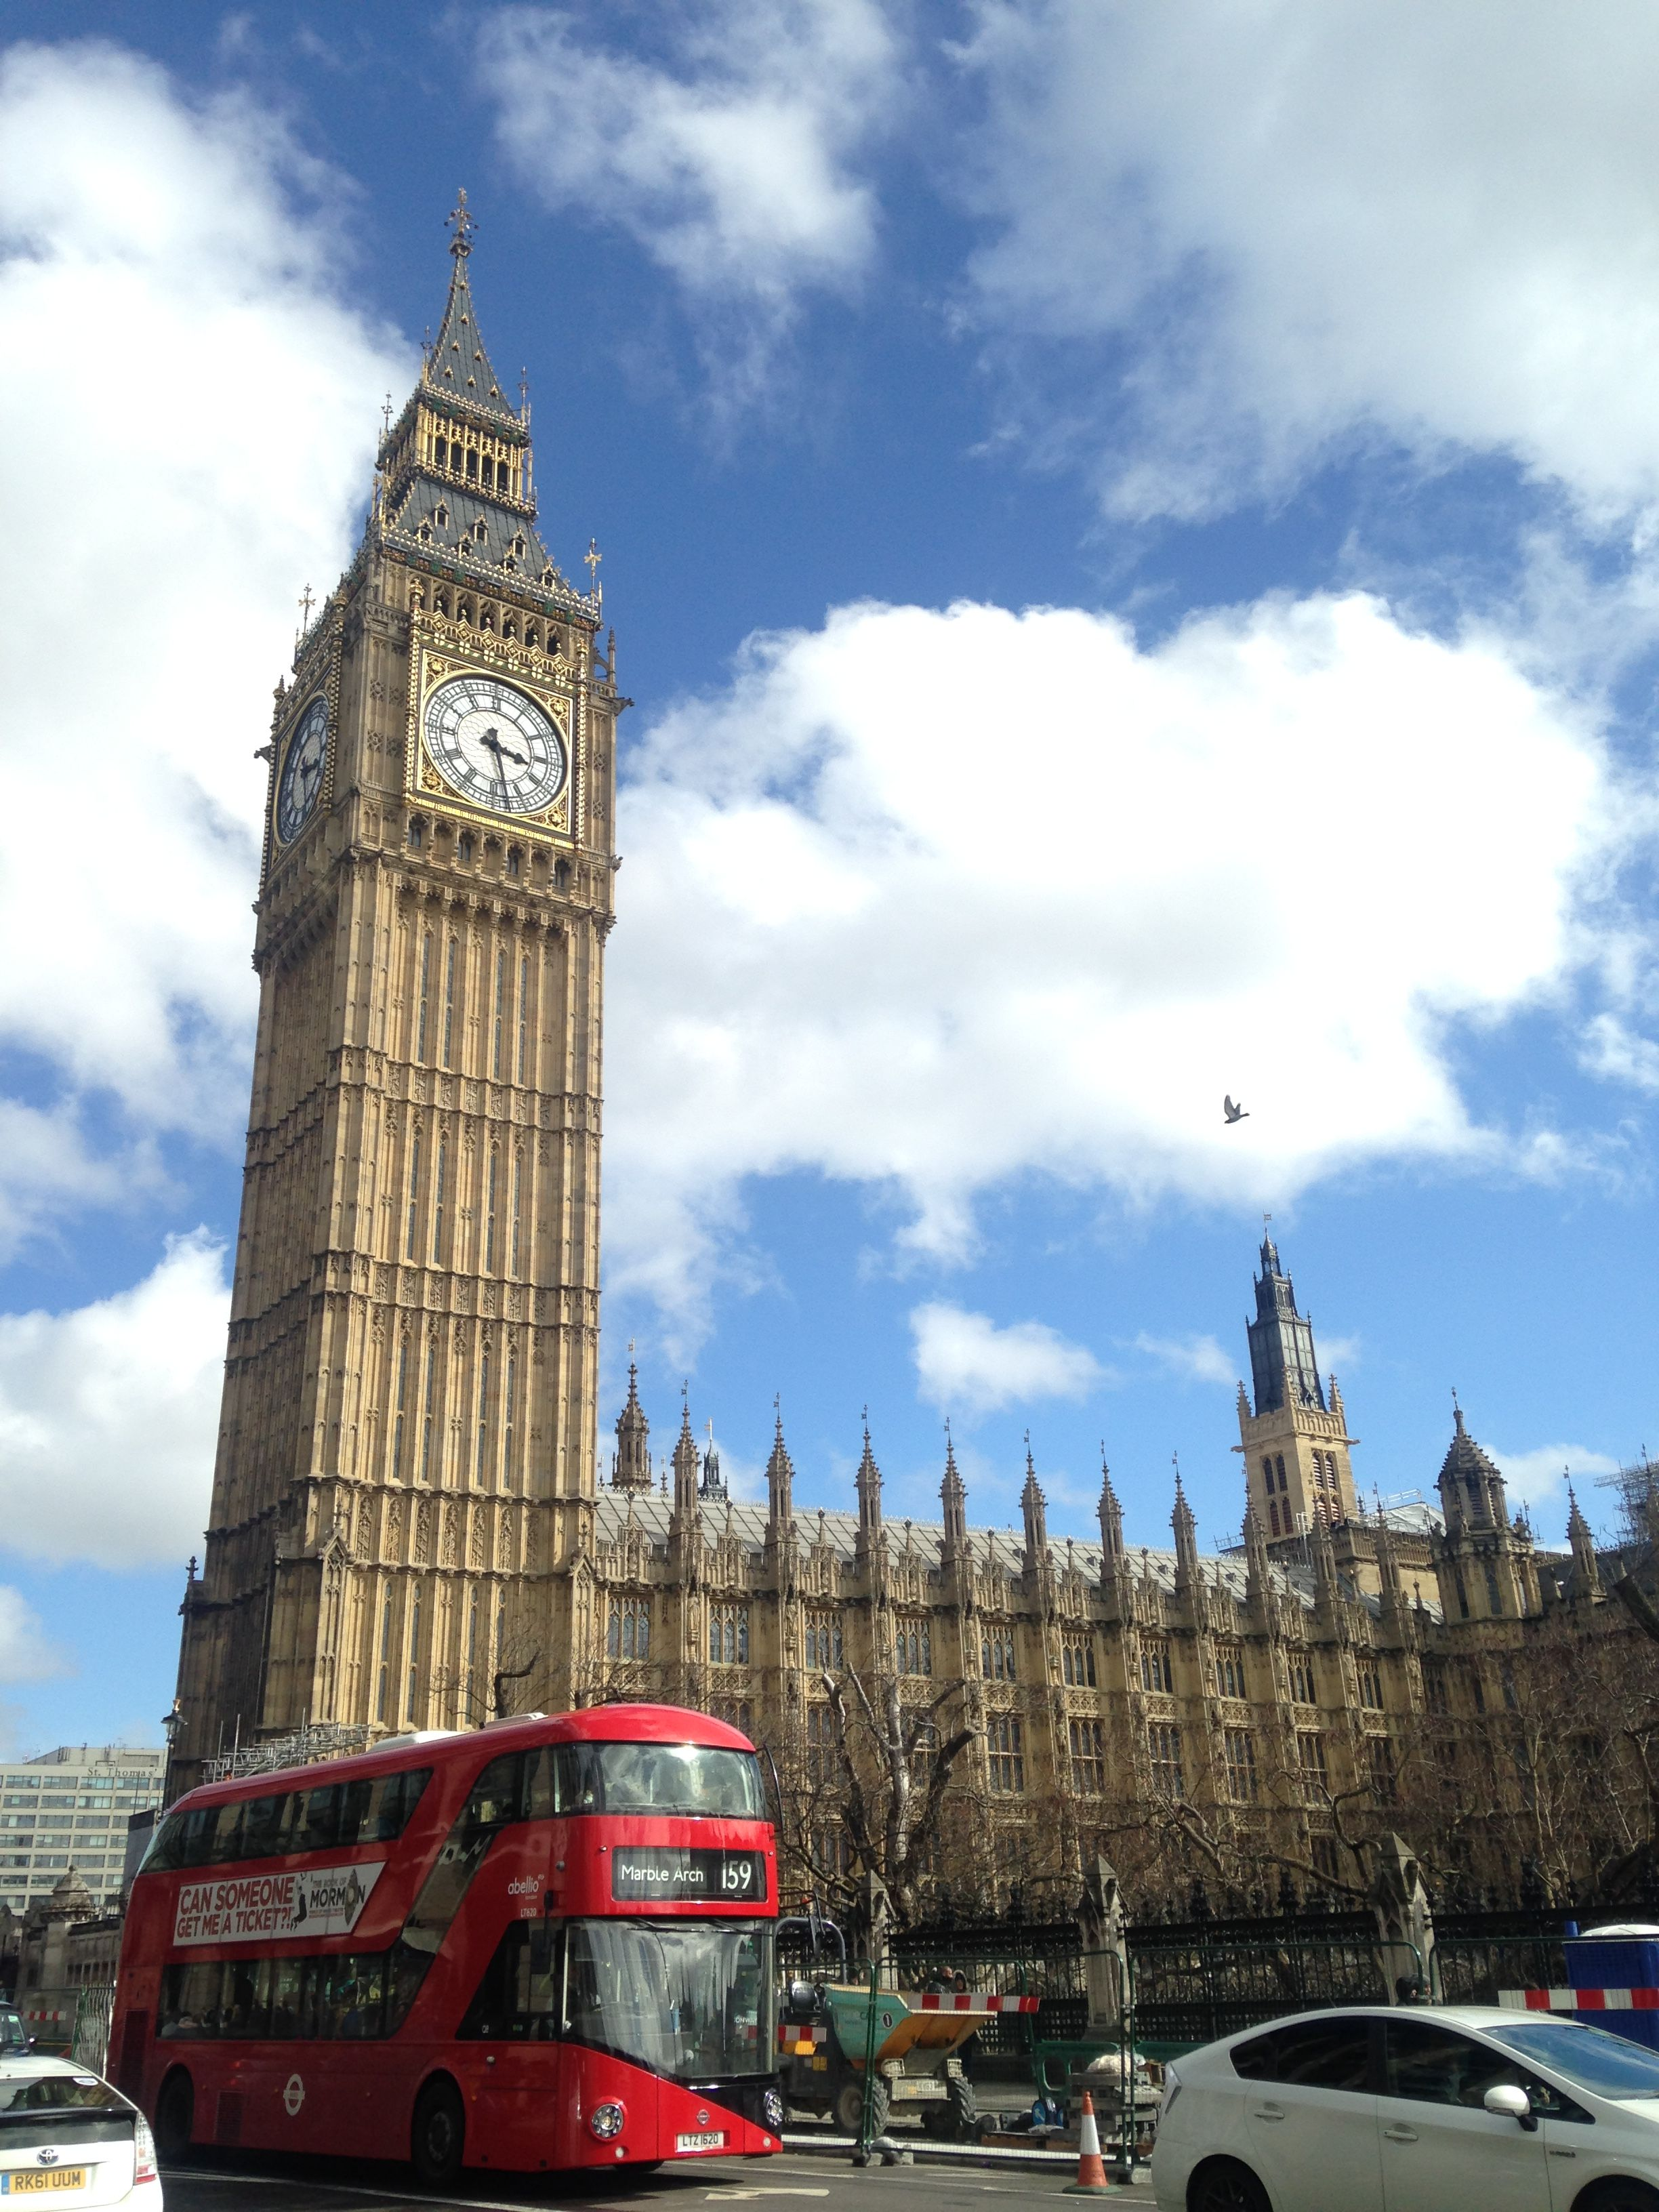 #london #england #bigben #travel